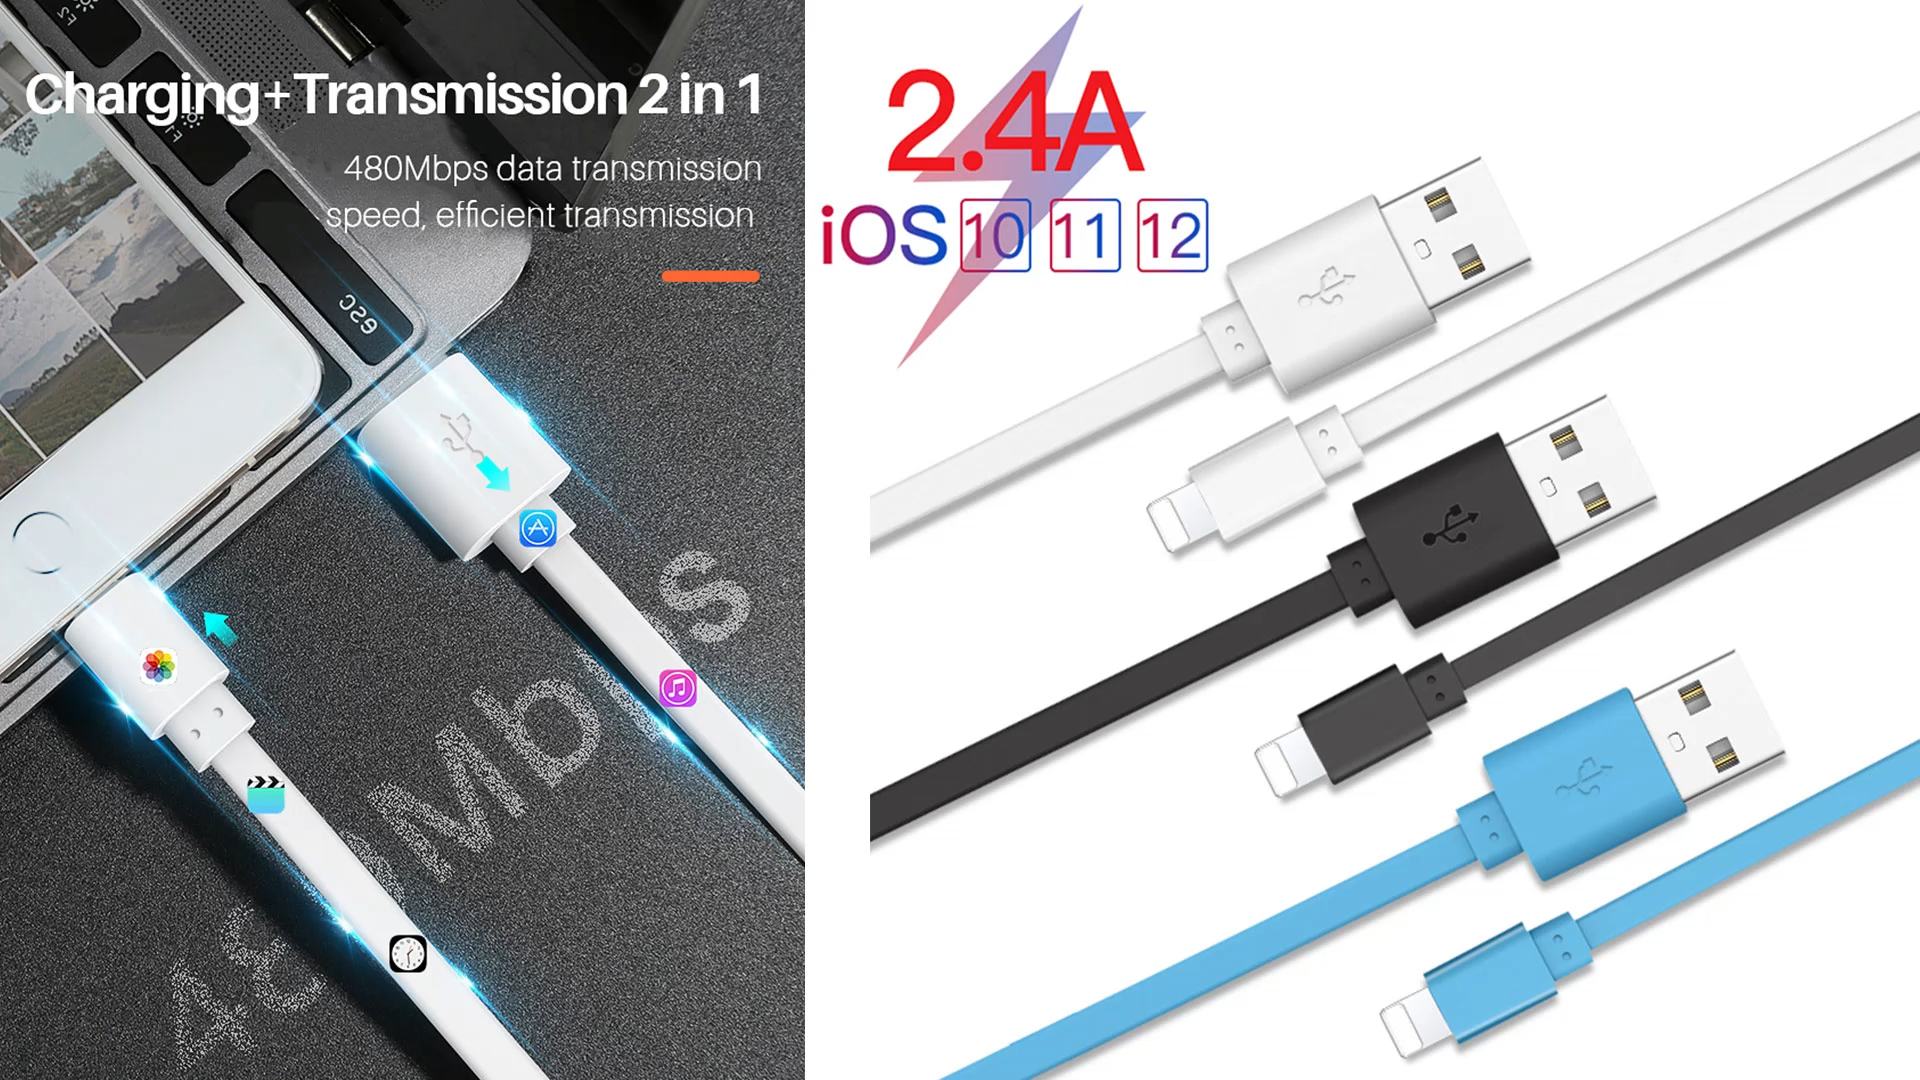 Ready To Ship 2.4A Cable i Phone Data Usb2.0 Charging Cabo For iPhone Cable Light ning Phone  Mobile Charger Ladekabel USB Cable